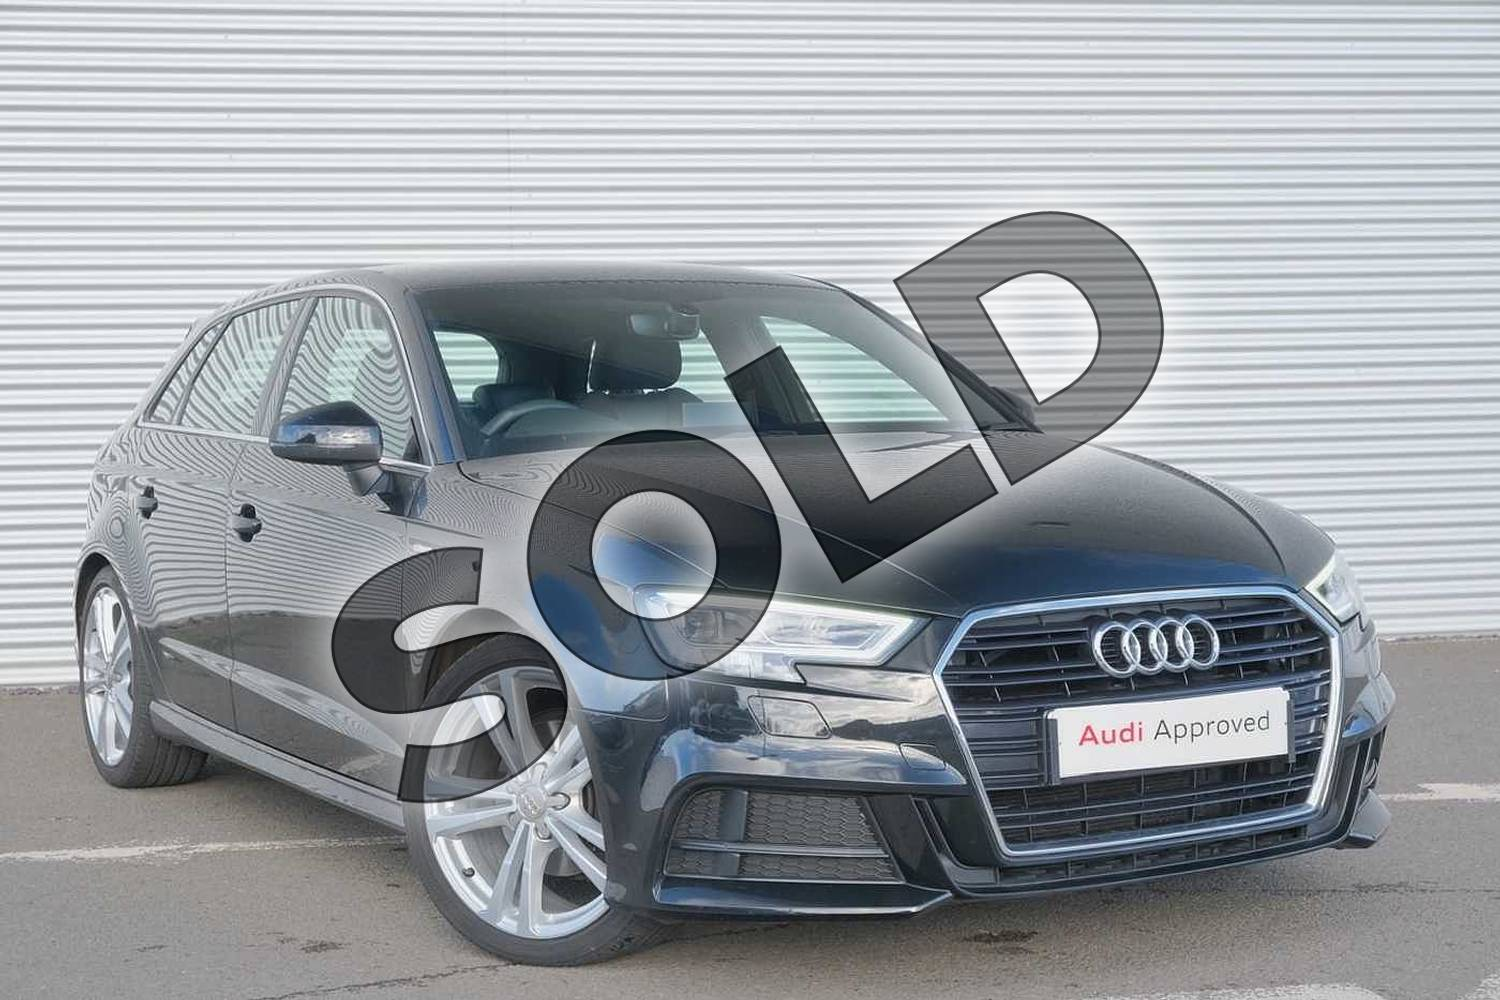 2018 Audi A3 Sportback 35 TFSI S Line 5dr S Tronic in Myth Black Metallic at Coventry Audi